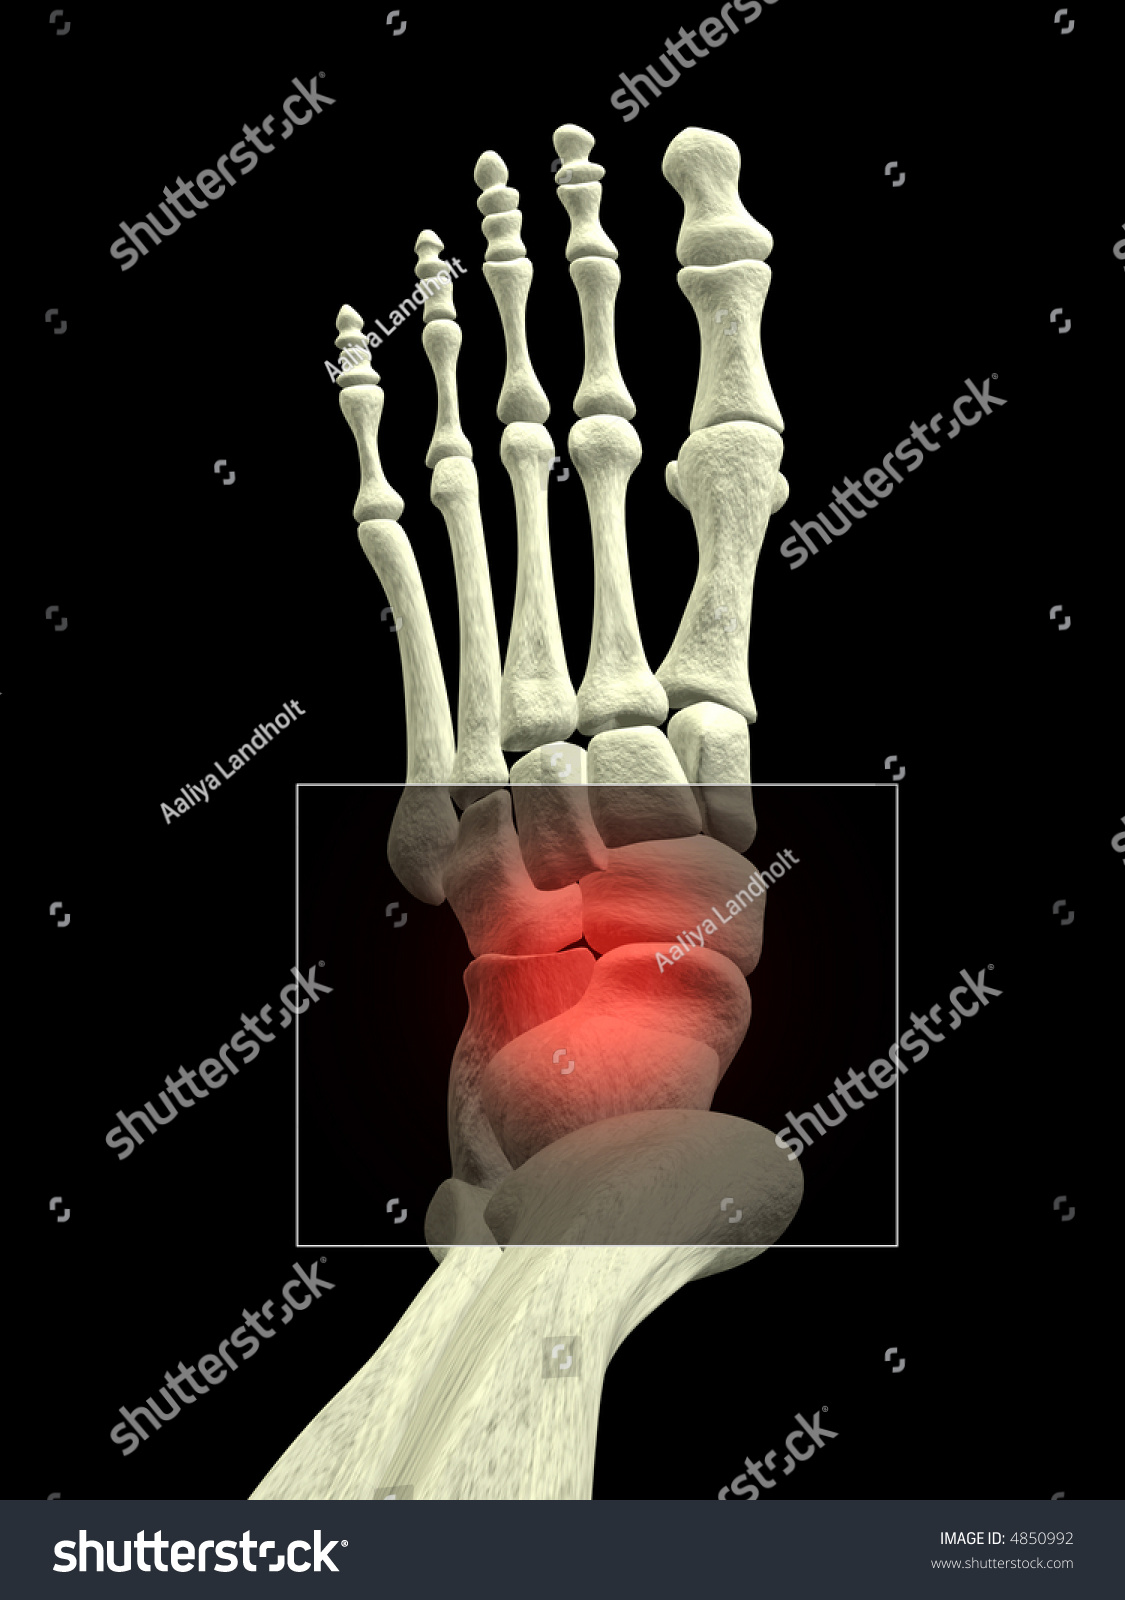 Royalty Free Stock Illustration of Foot Bones Ankle Pain Stock ...